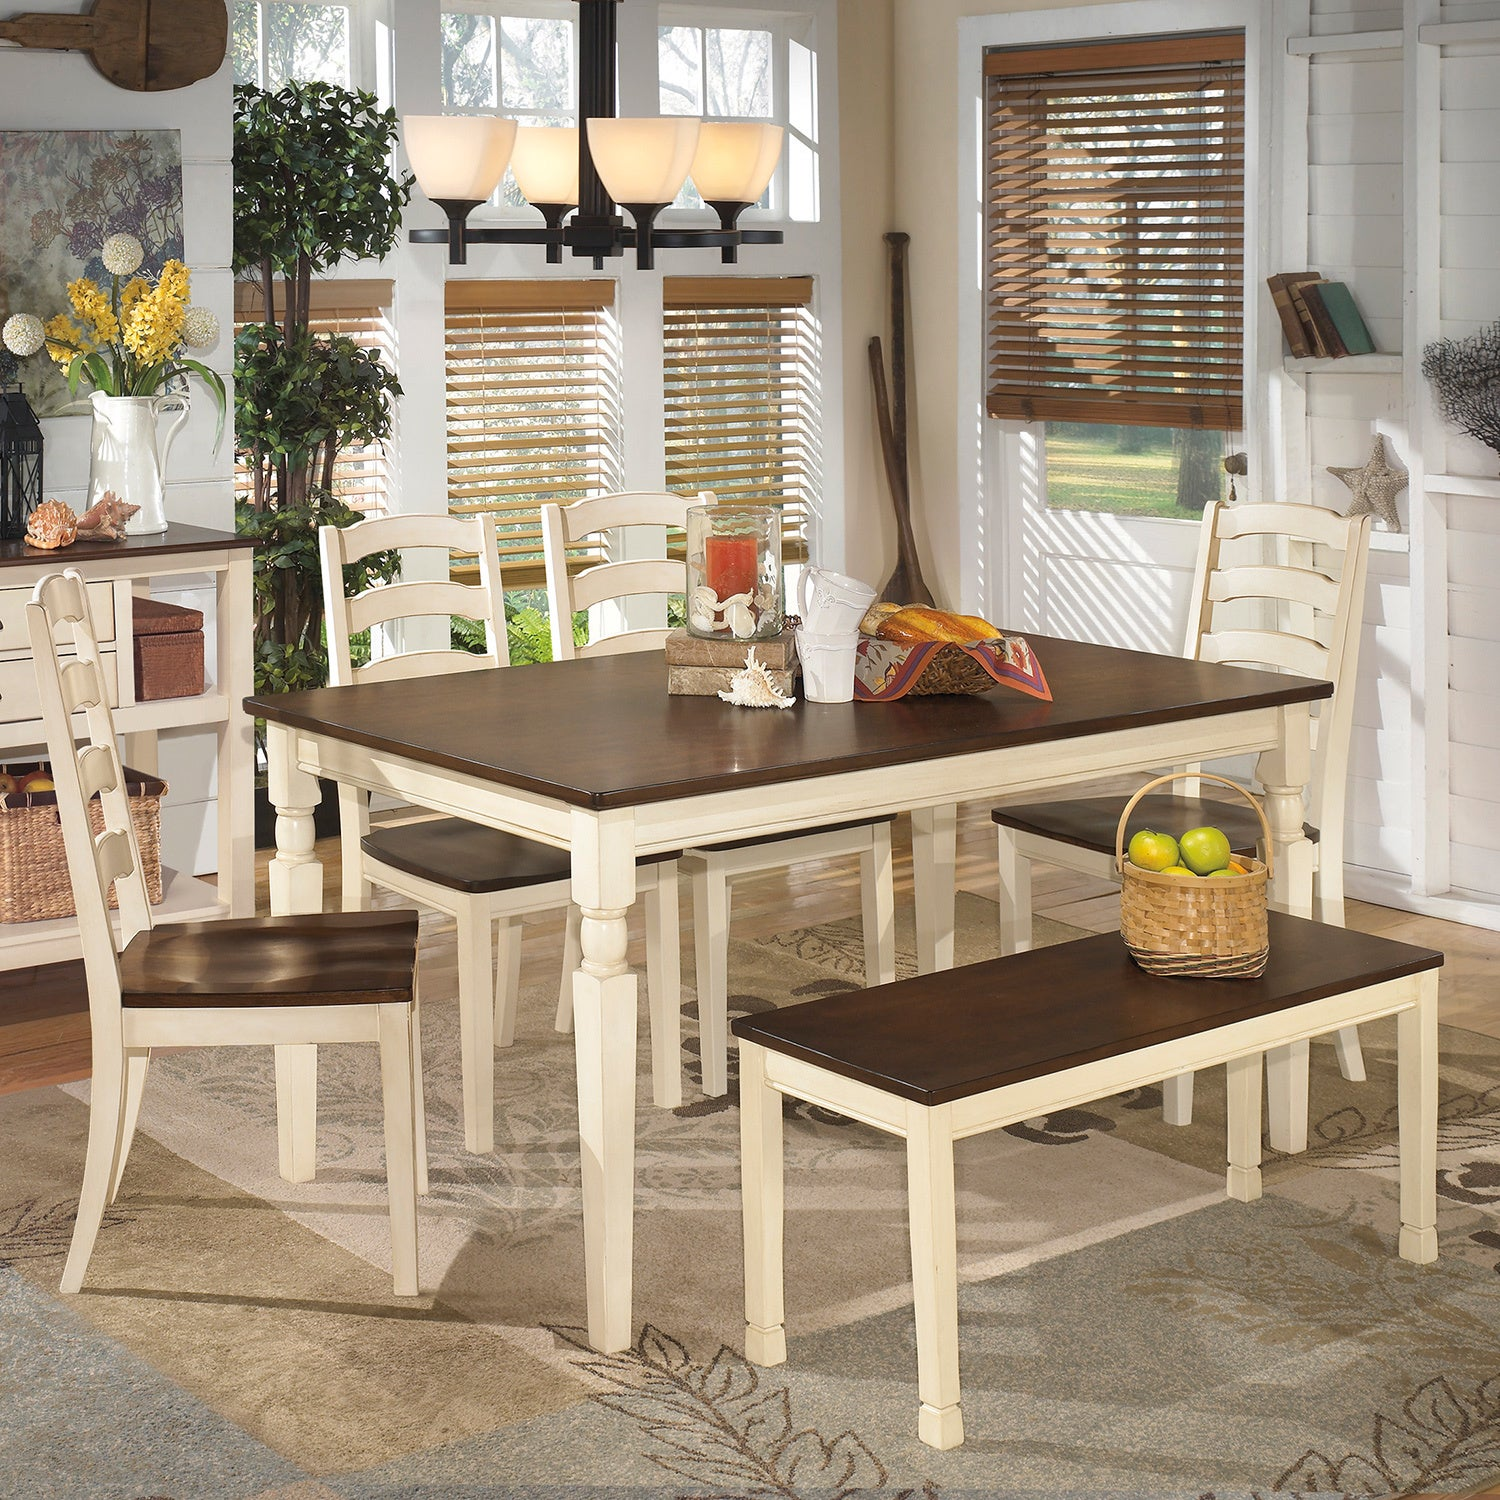 Owingsville Dining Room Bench Ashley Furniture Homestore  : L16132557 from www.hargapass.com size 2500 x 2500 jpeg 770kB